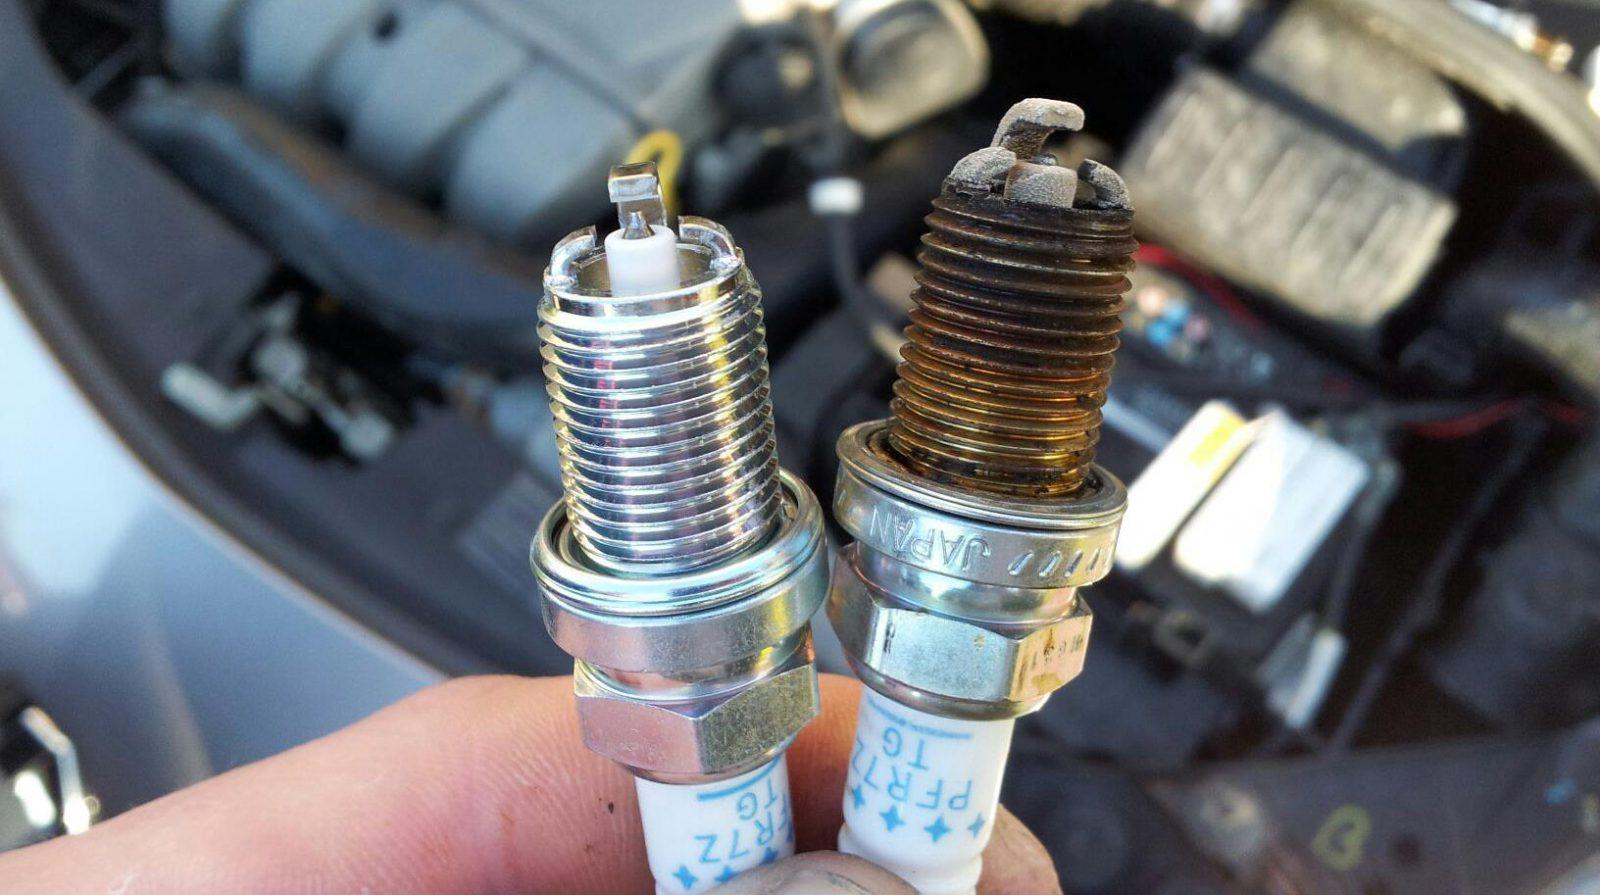 Spark Plug Wire To Coil Diagram For 2001 Mazda Mpv Needed Thanks